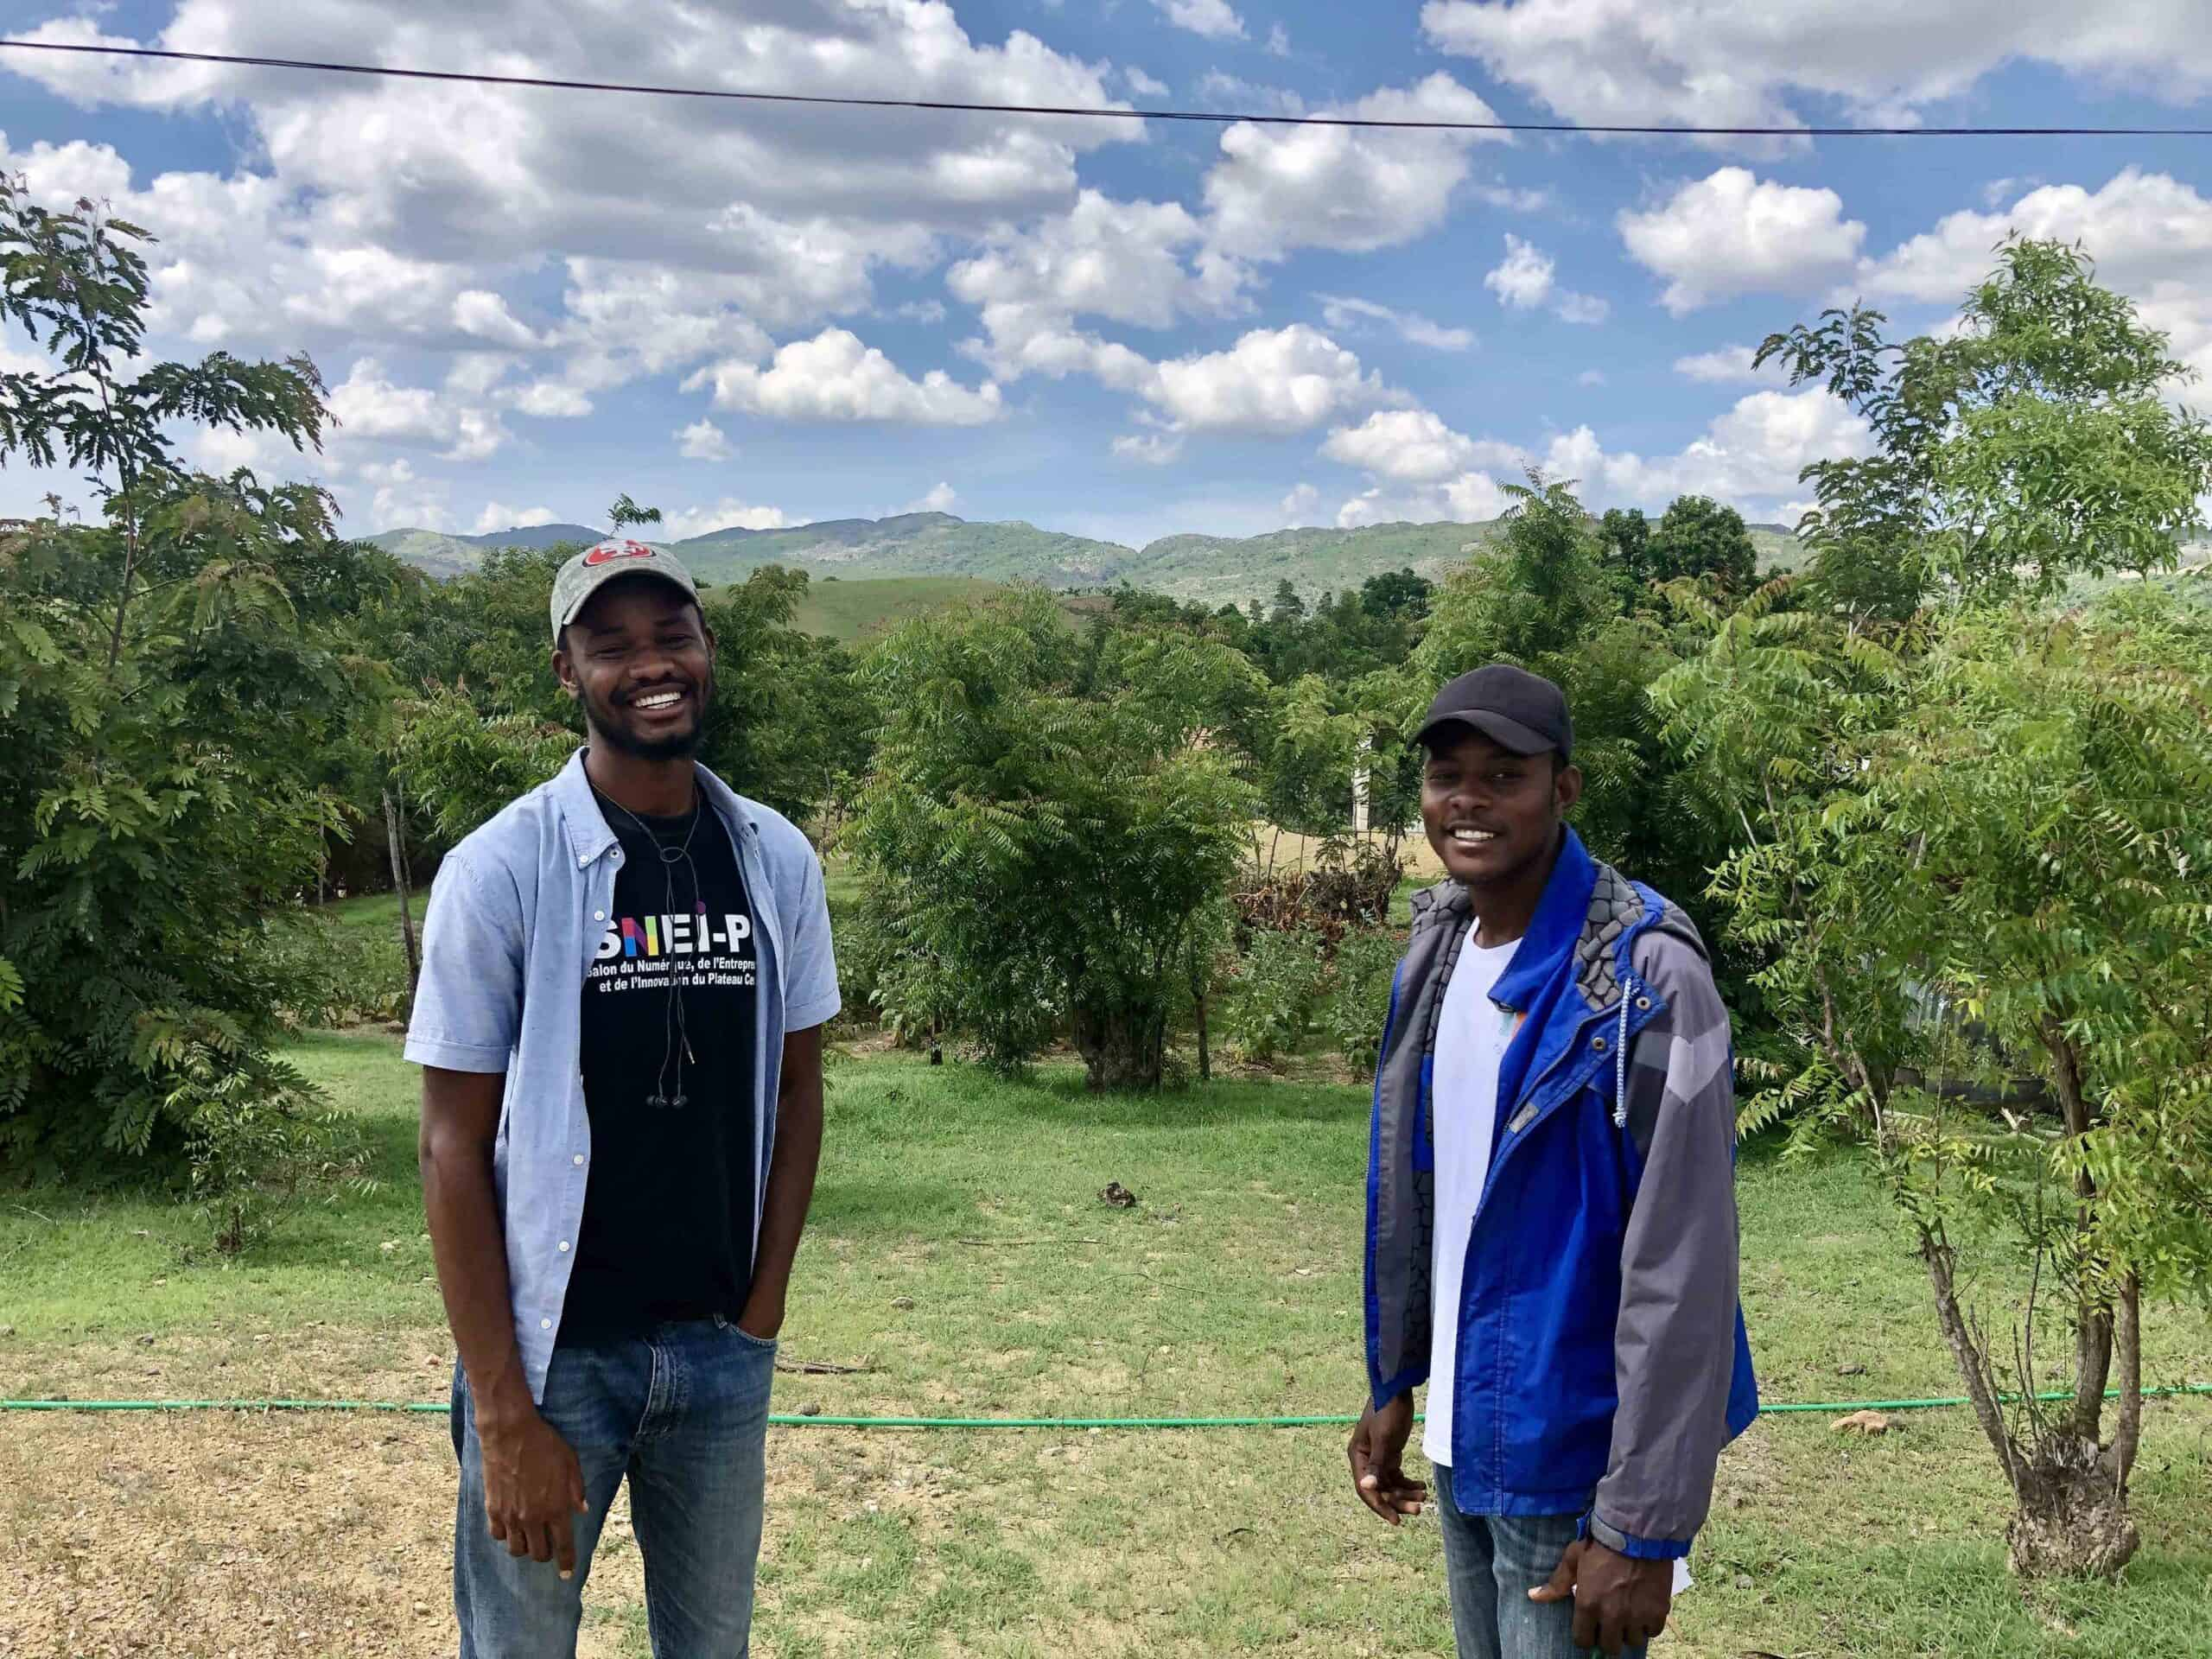 Impact education and witness a student's journey. Former students pictured here visit the agriculture farm associated with our programs.